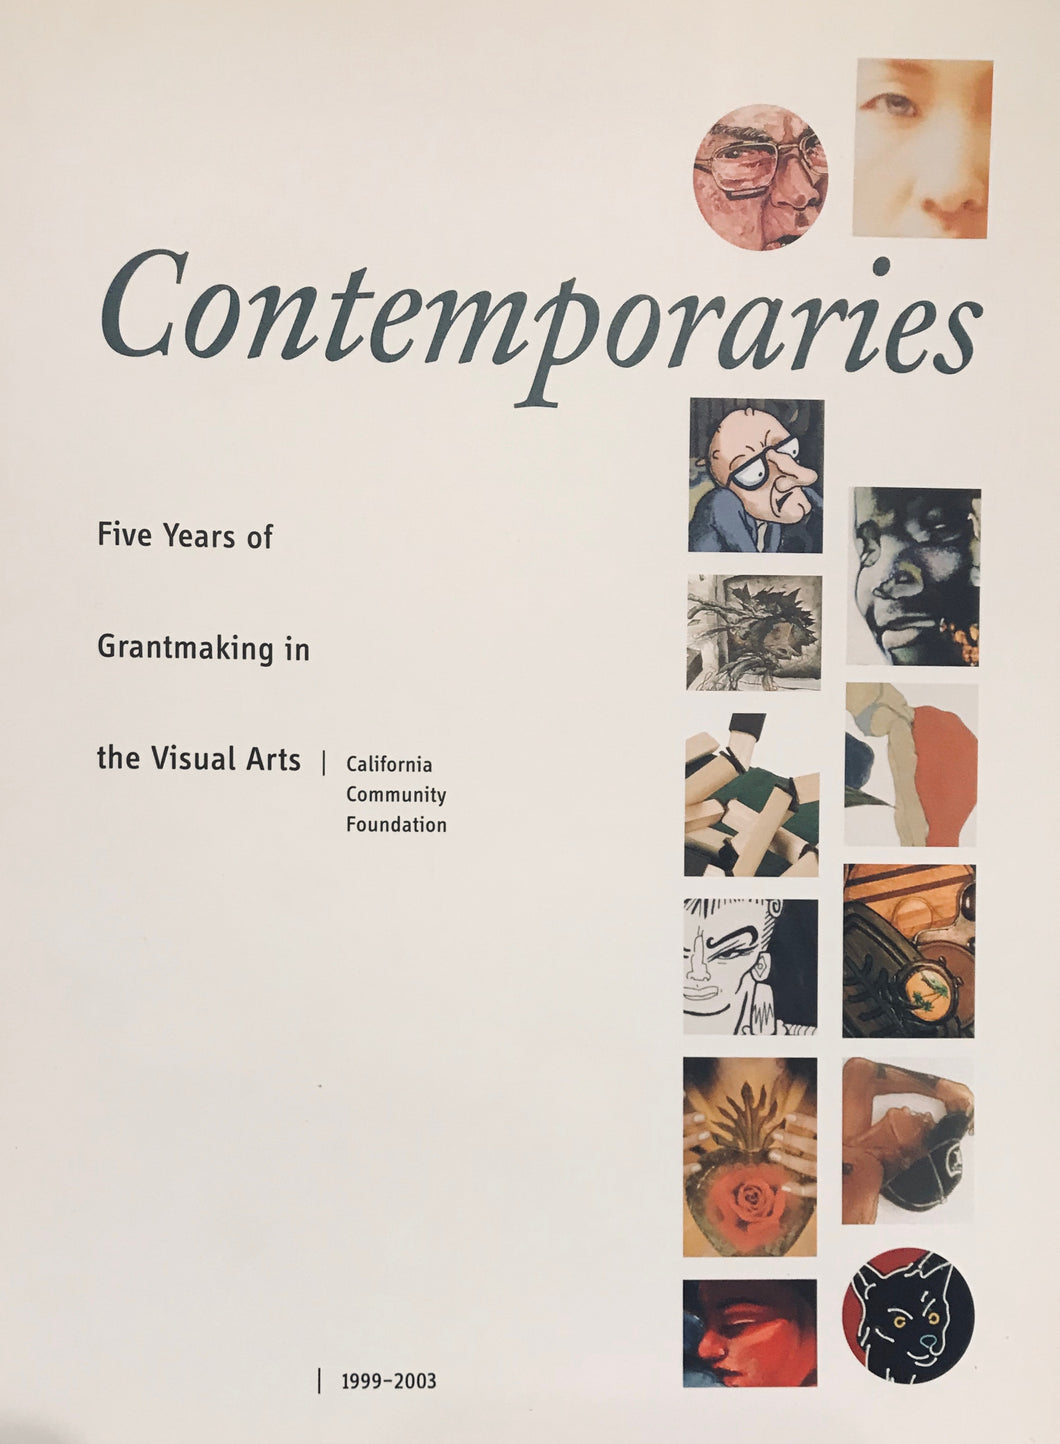 Contemporaries: Five Years of Grantmaking in the Visual Arts (1999-2003)